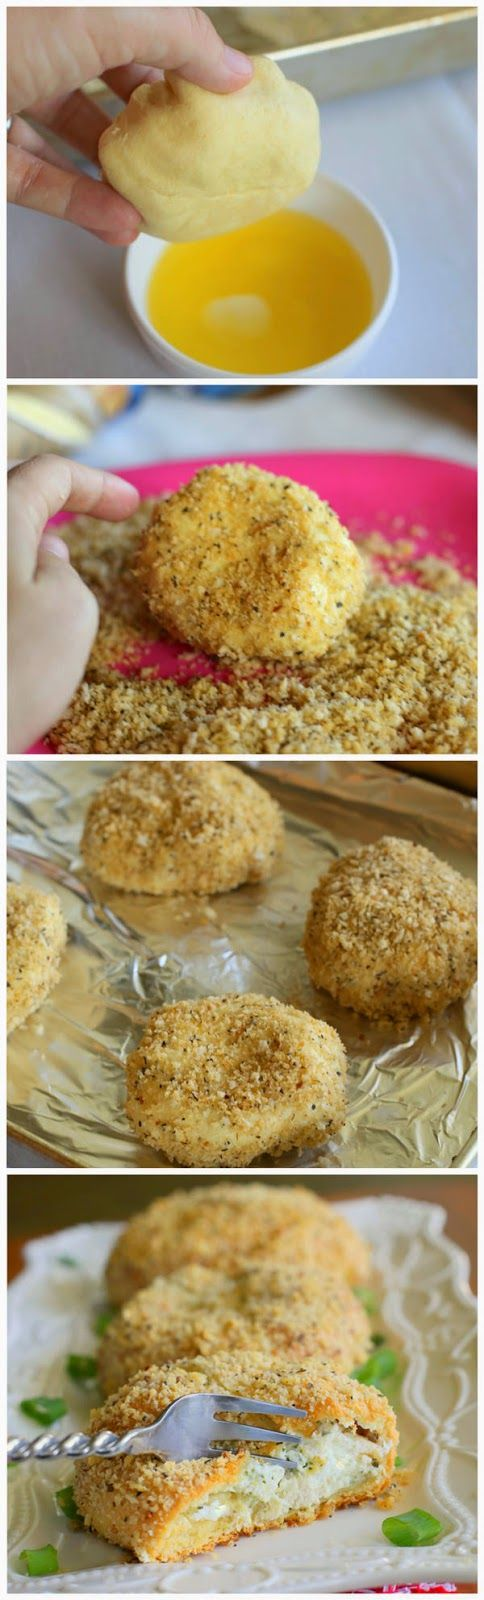 kiss recipe: Pesto Chicken Pillows gonna make this with vegan meatless meat